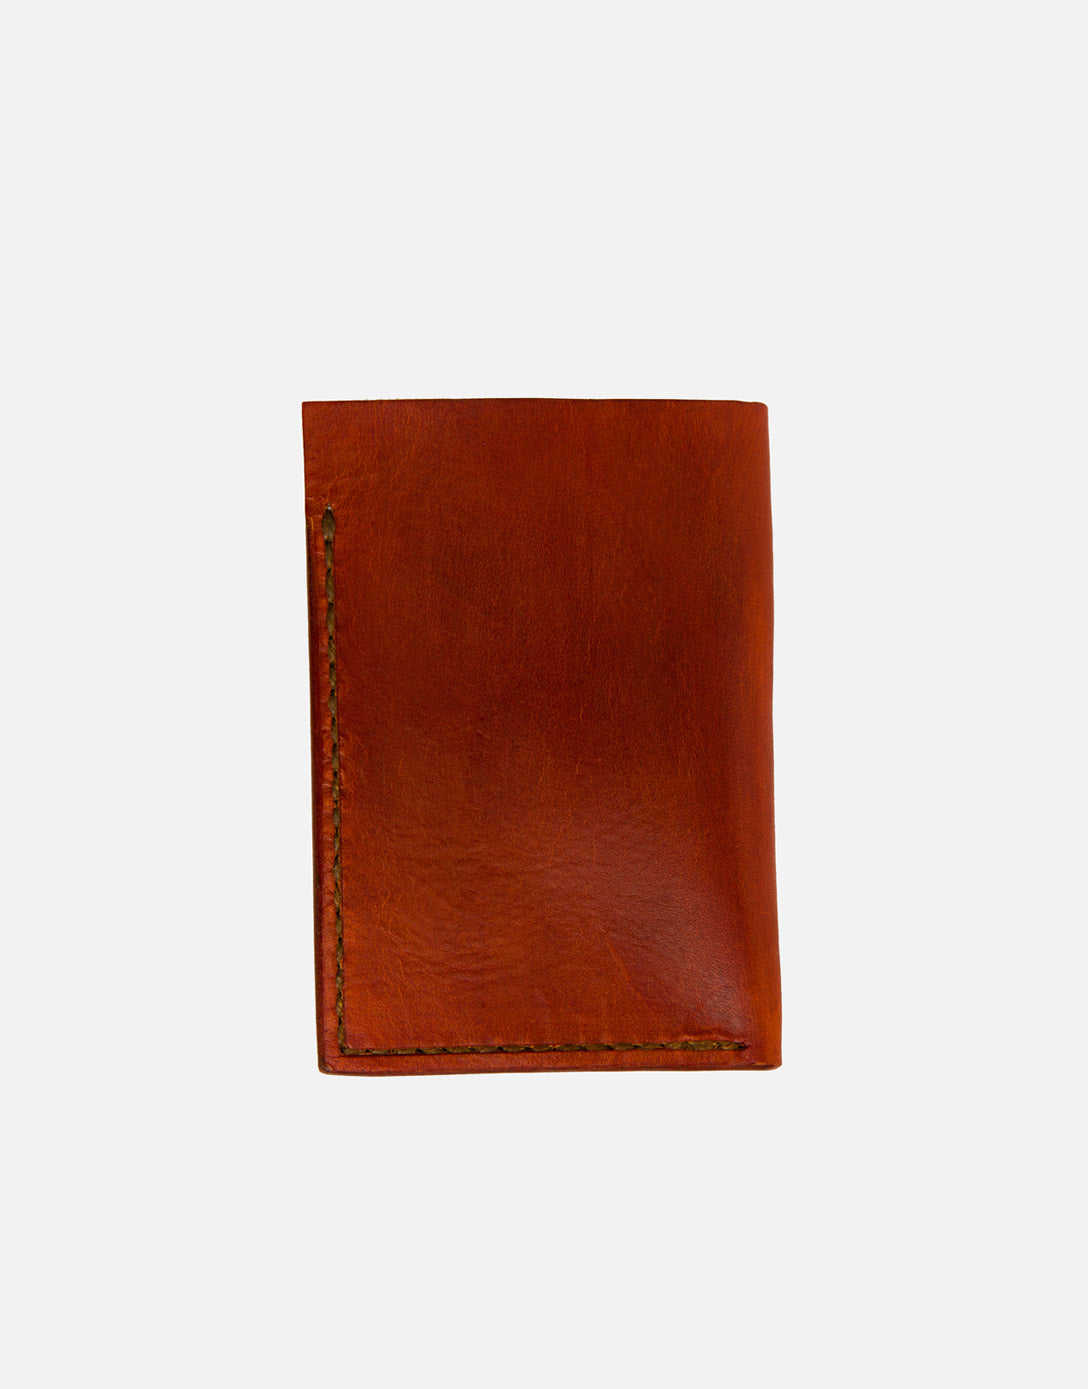 Ada Blackjack Cinnamon Card Holder